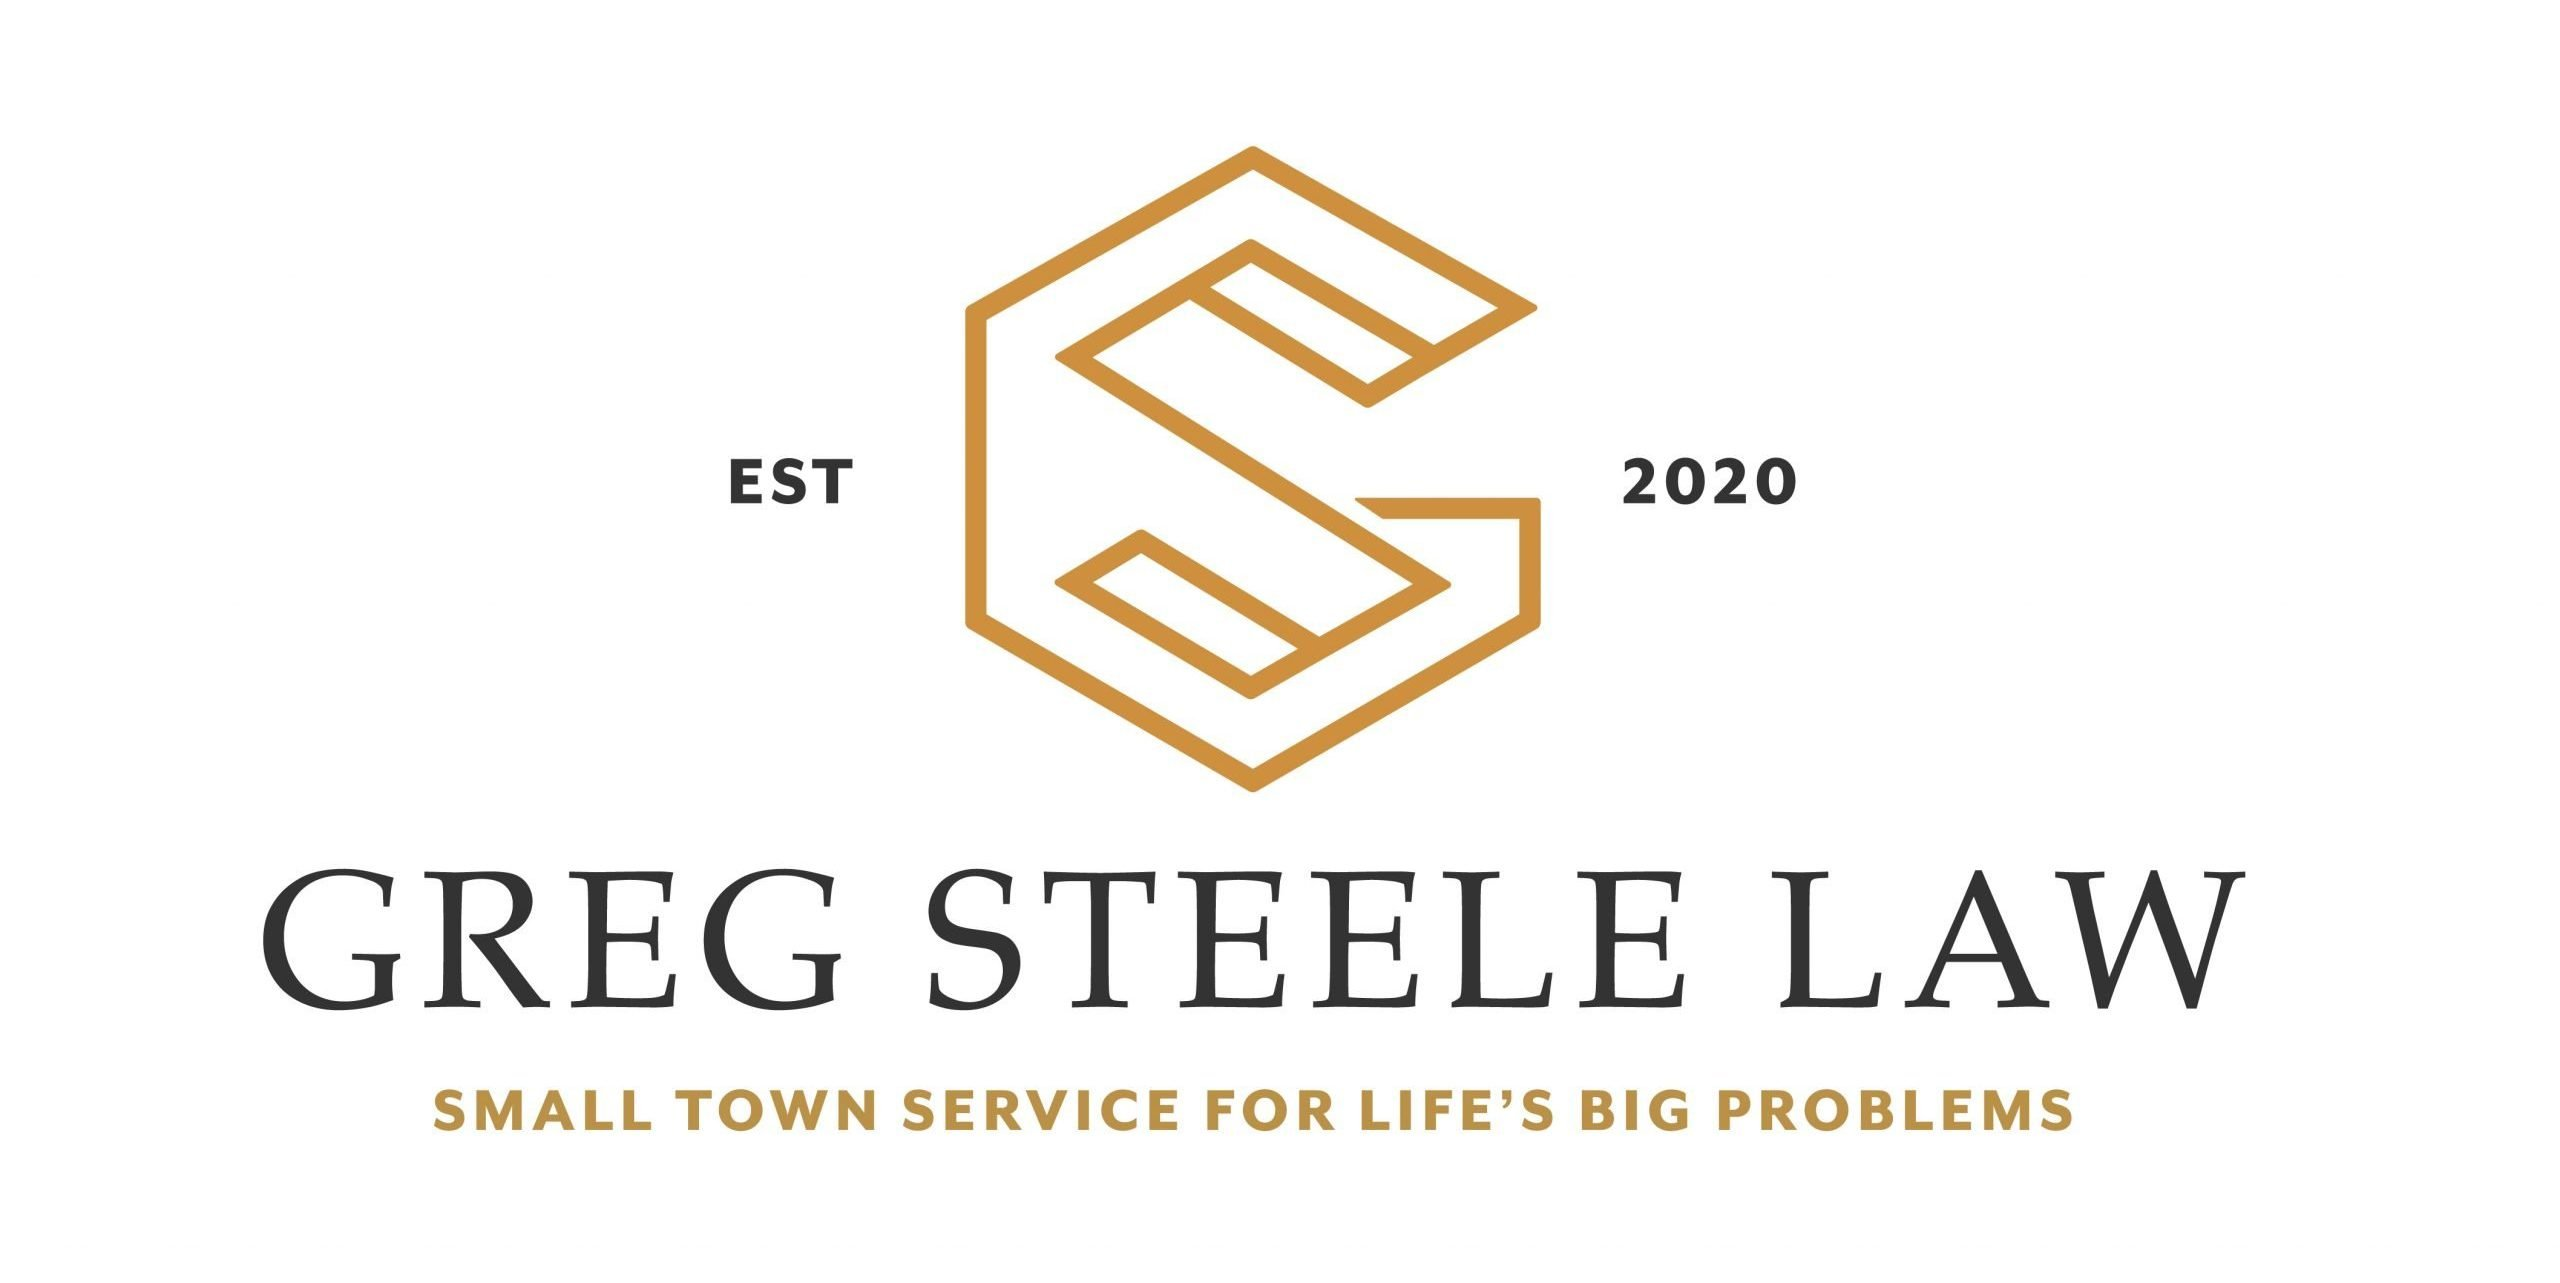 Greg Steele Law, LLC